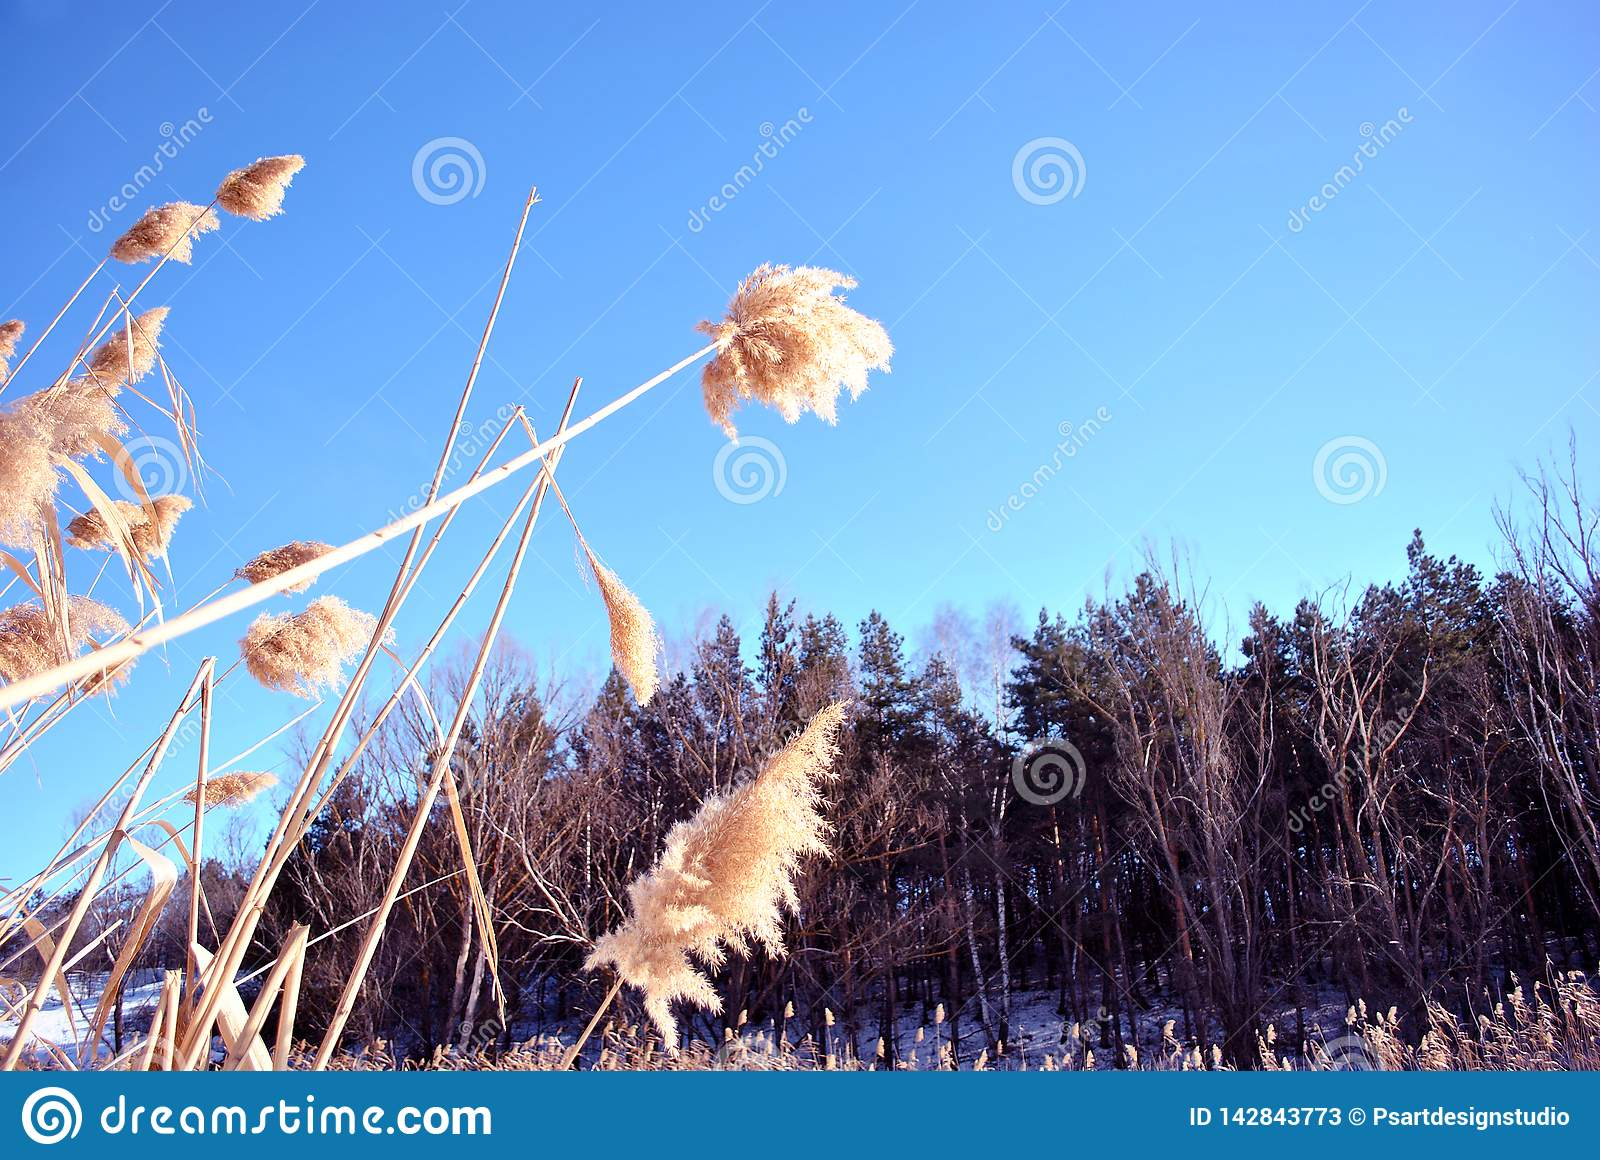 Bright yellow dry reeds and pine forest behind, bright blue sky, view from ground on top